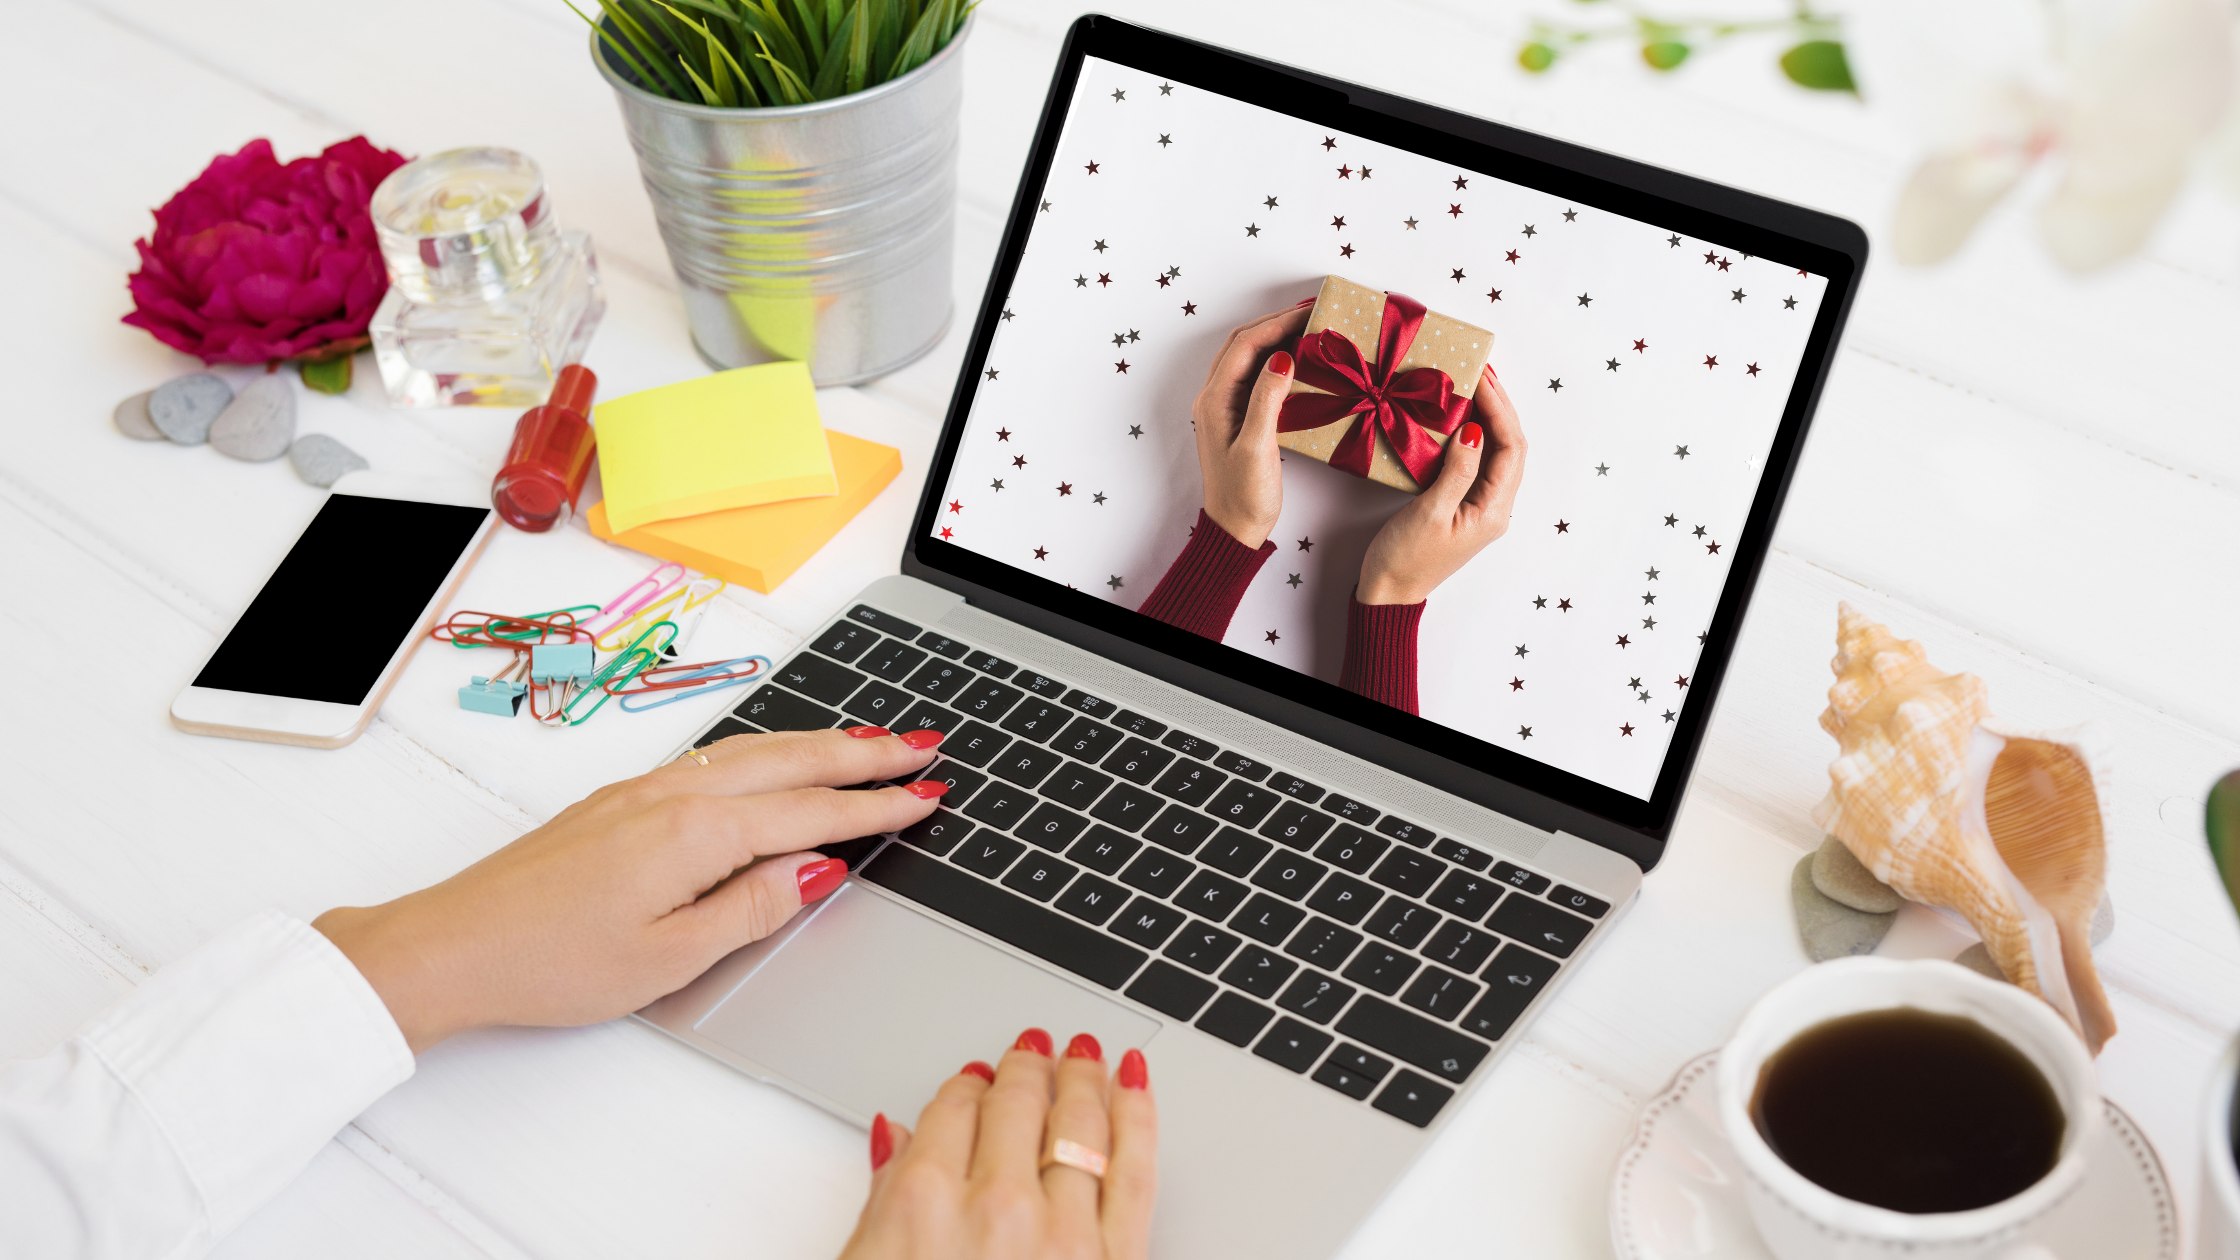 Get ready for the 2021 holiday season with these ecommerce tips